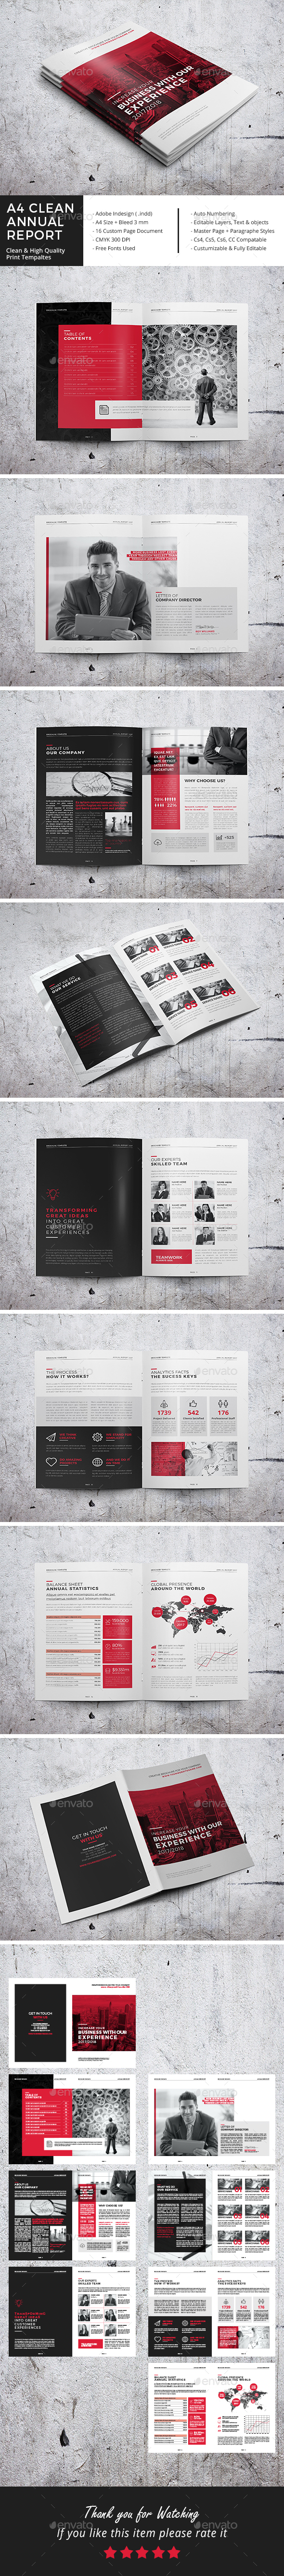 Clean Annual Report Brochure Template InDesign INDD - 16 Pages ...